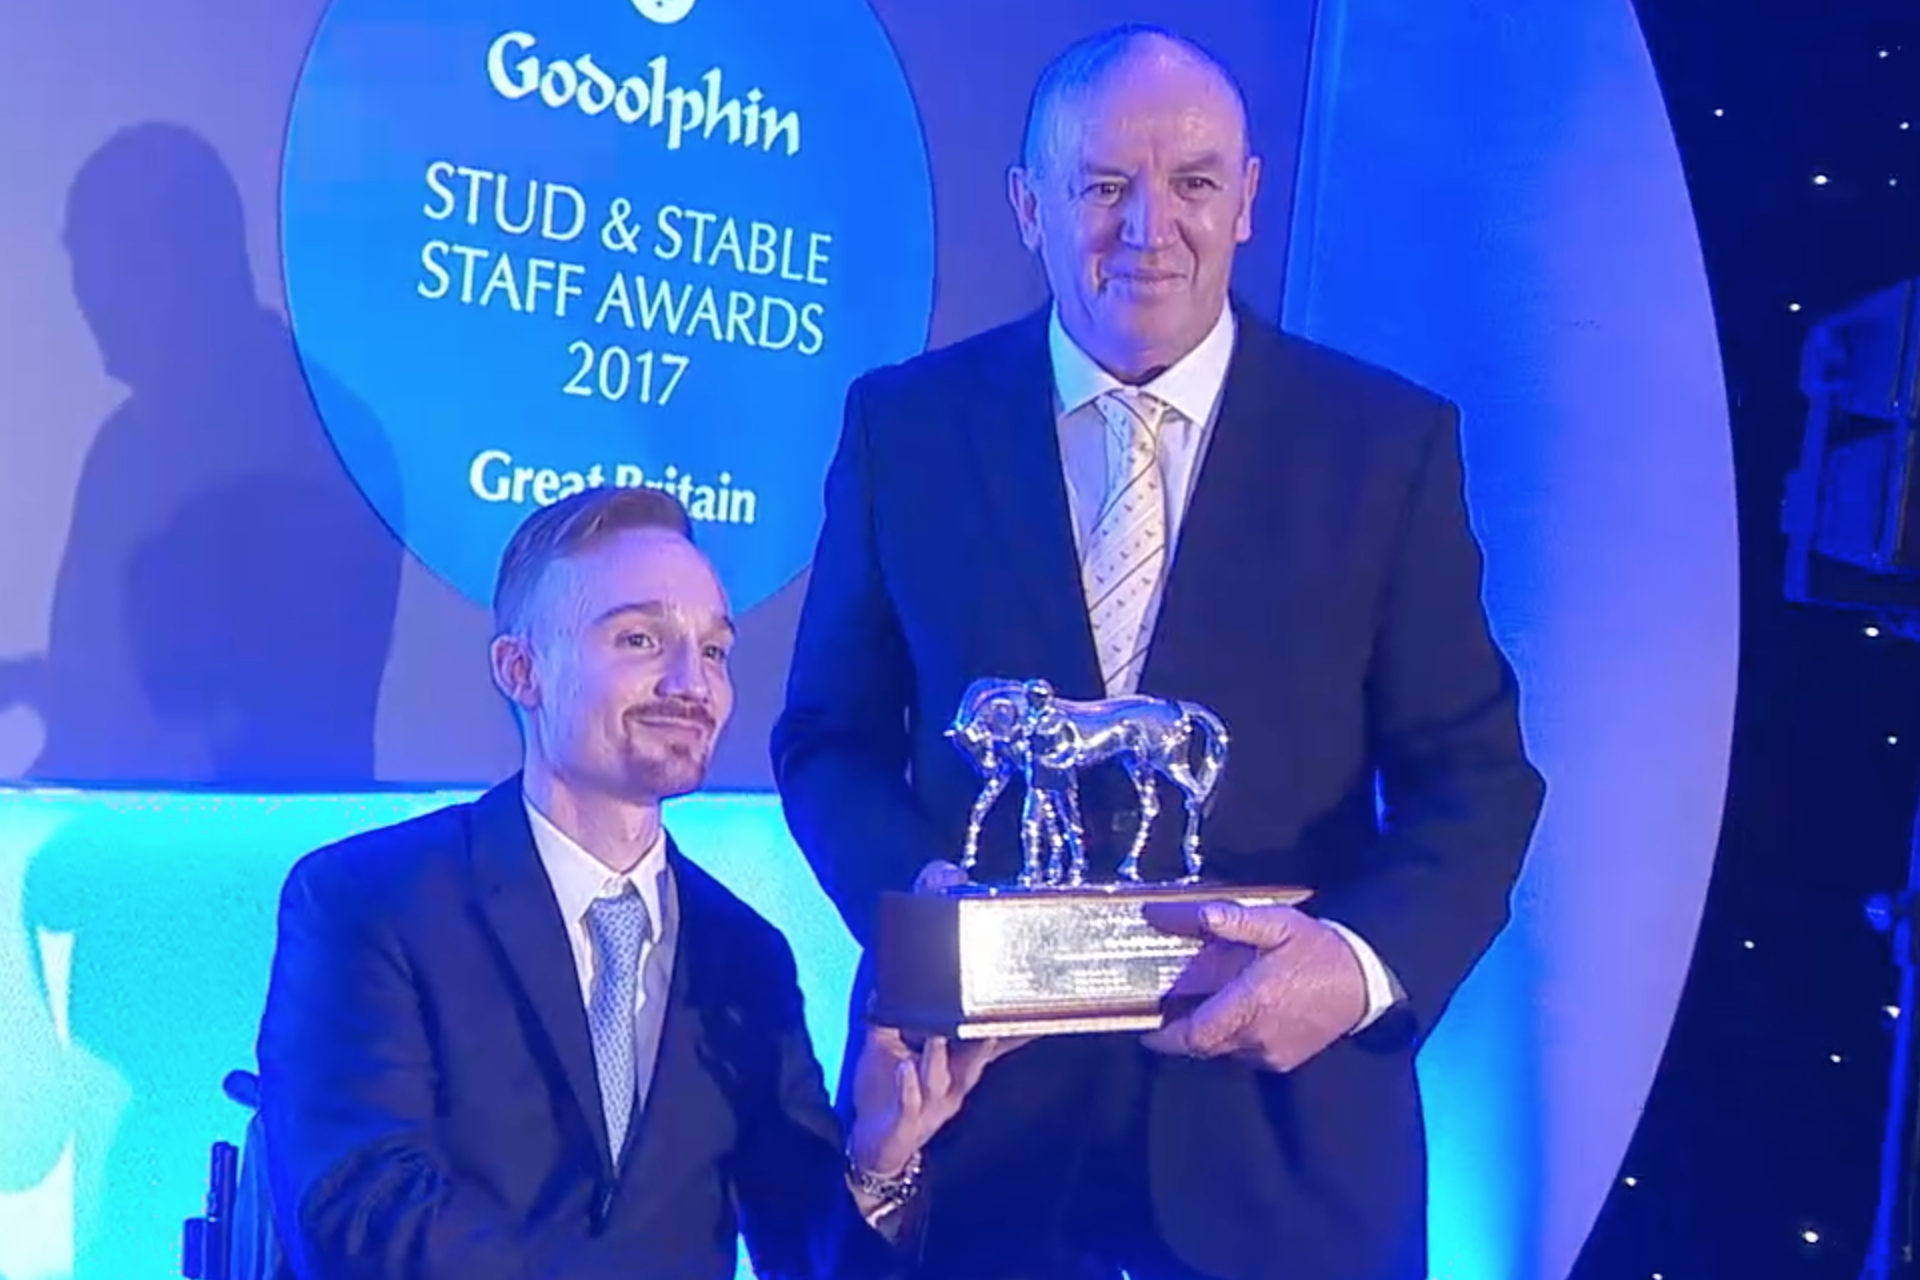 Terry Doherty of Watership Down Stud crowned employee of the year at Godolphin Stud and Stable Staff Awards 2017